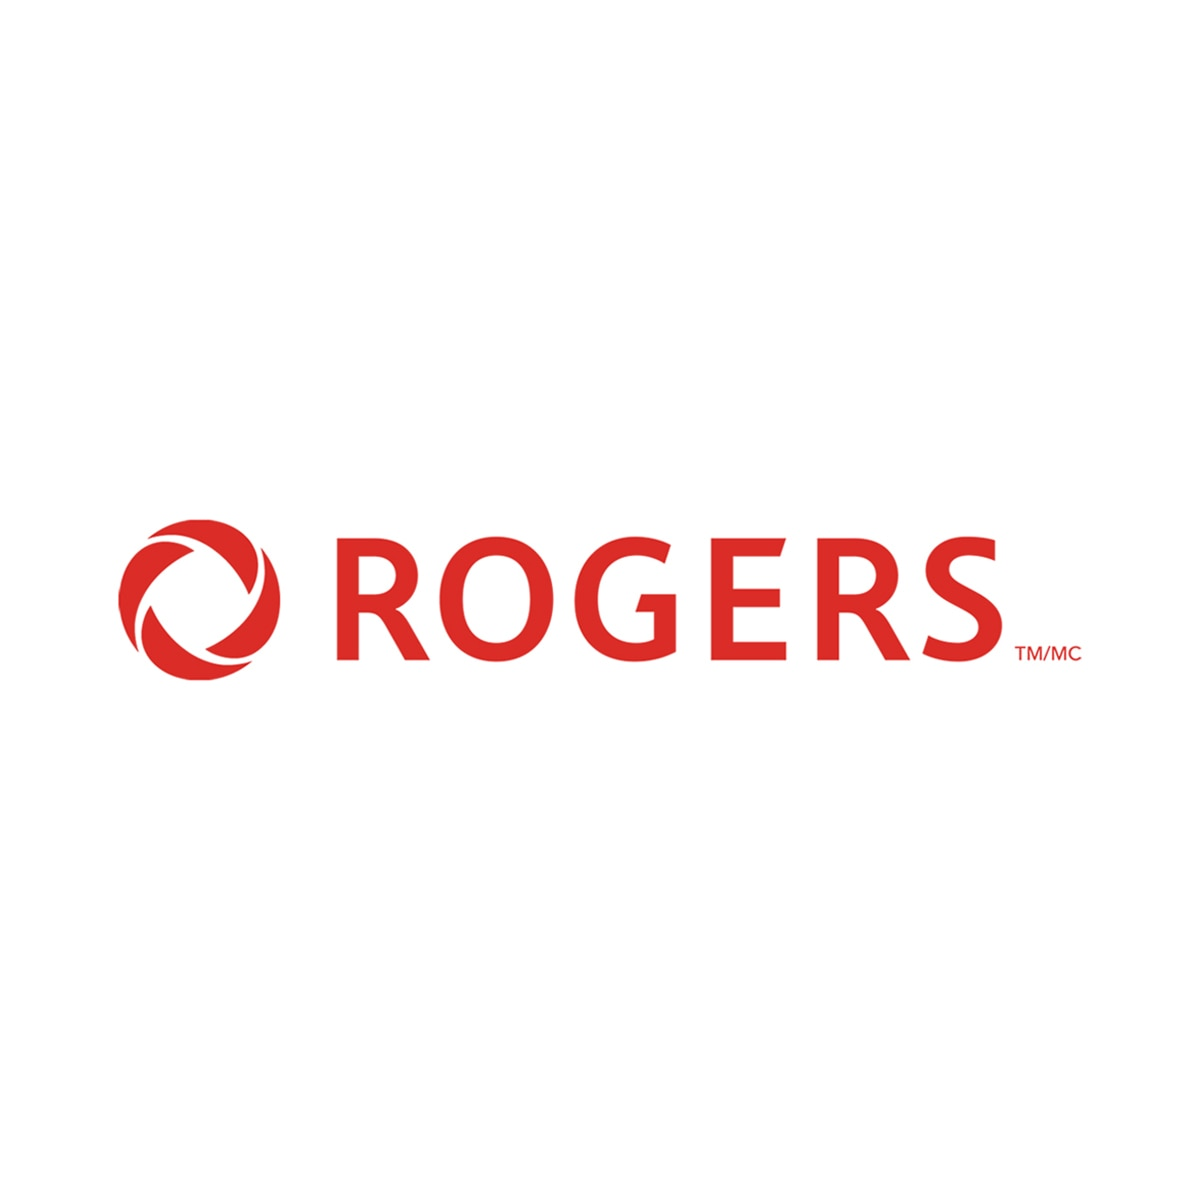 Wireless Internet Tv Home Monitoring And Home Phone Rogers